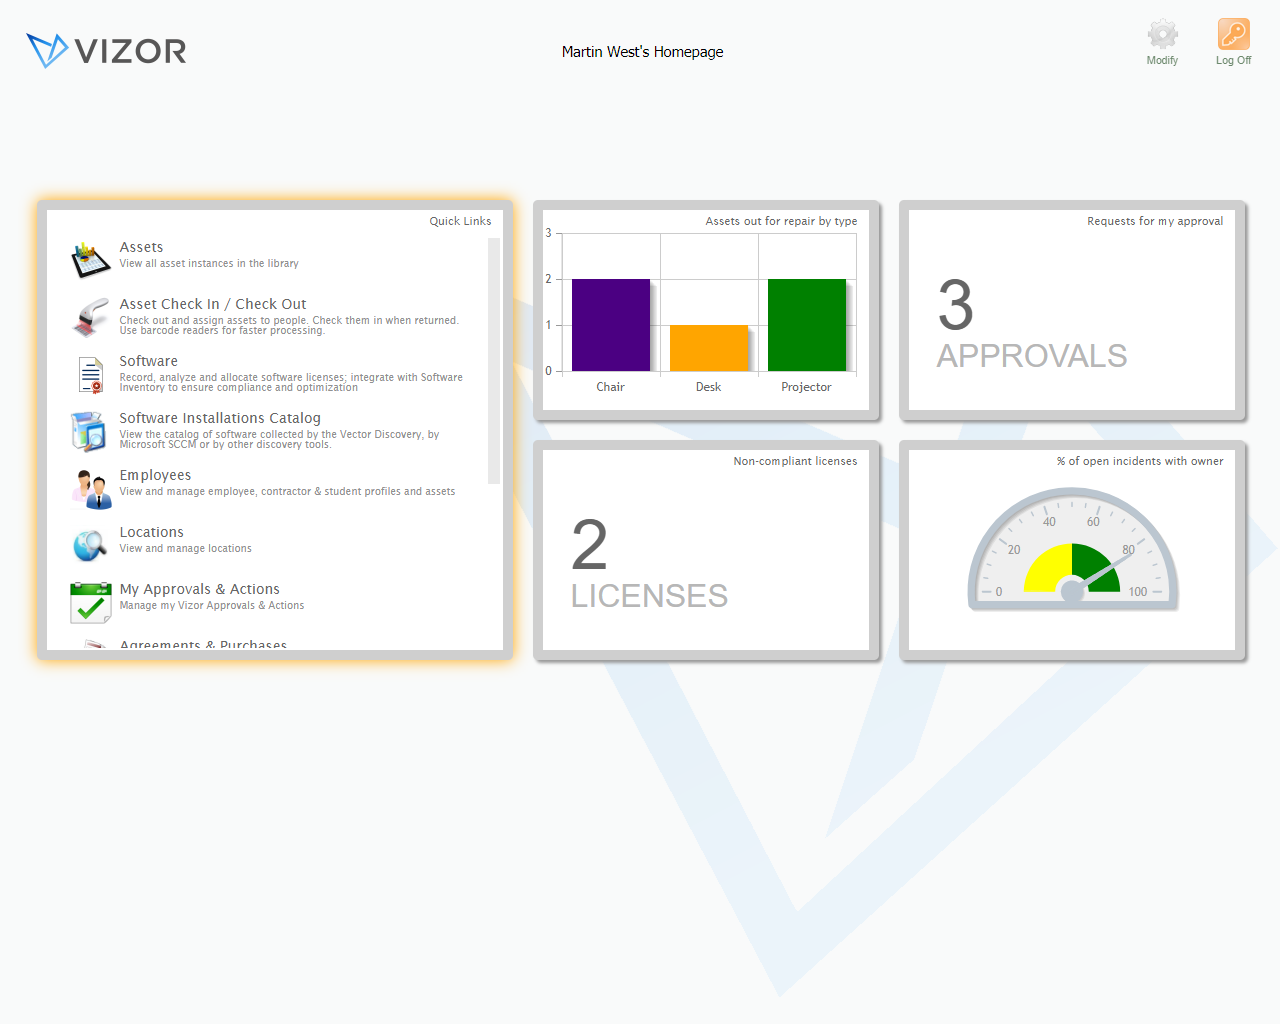 VIZOR IT Asset Management screenshot: Powerful dashboards and Reporting